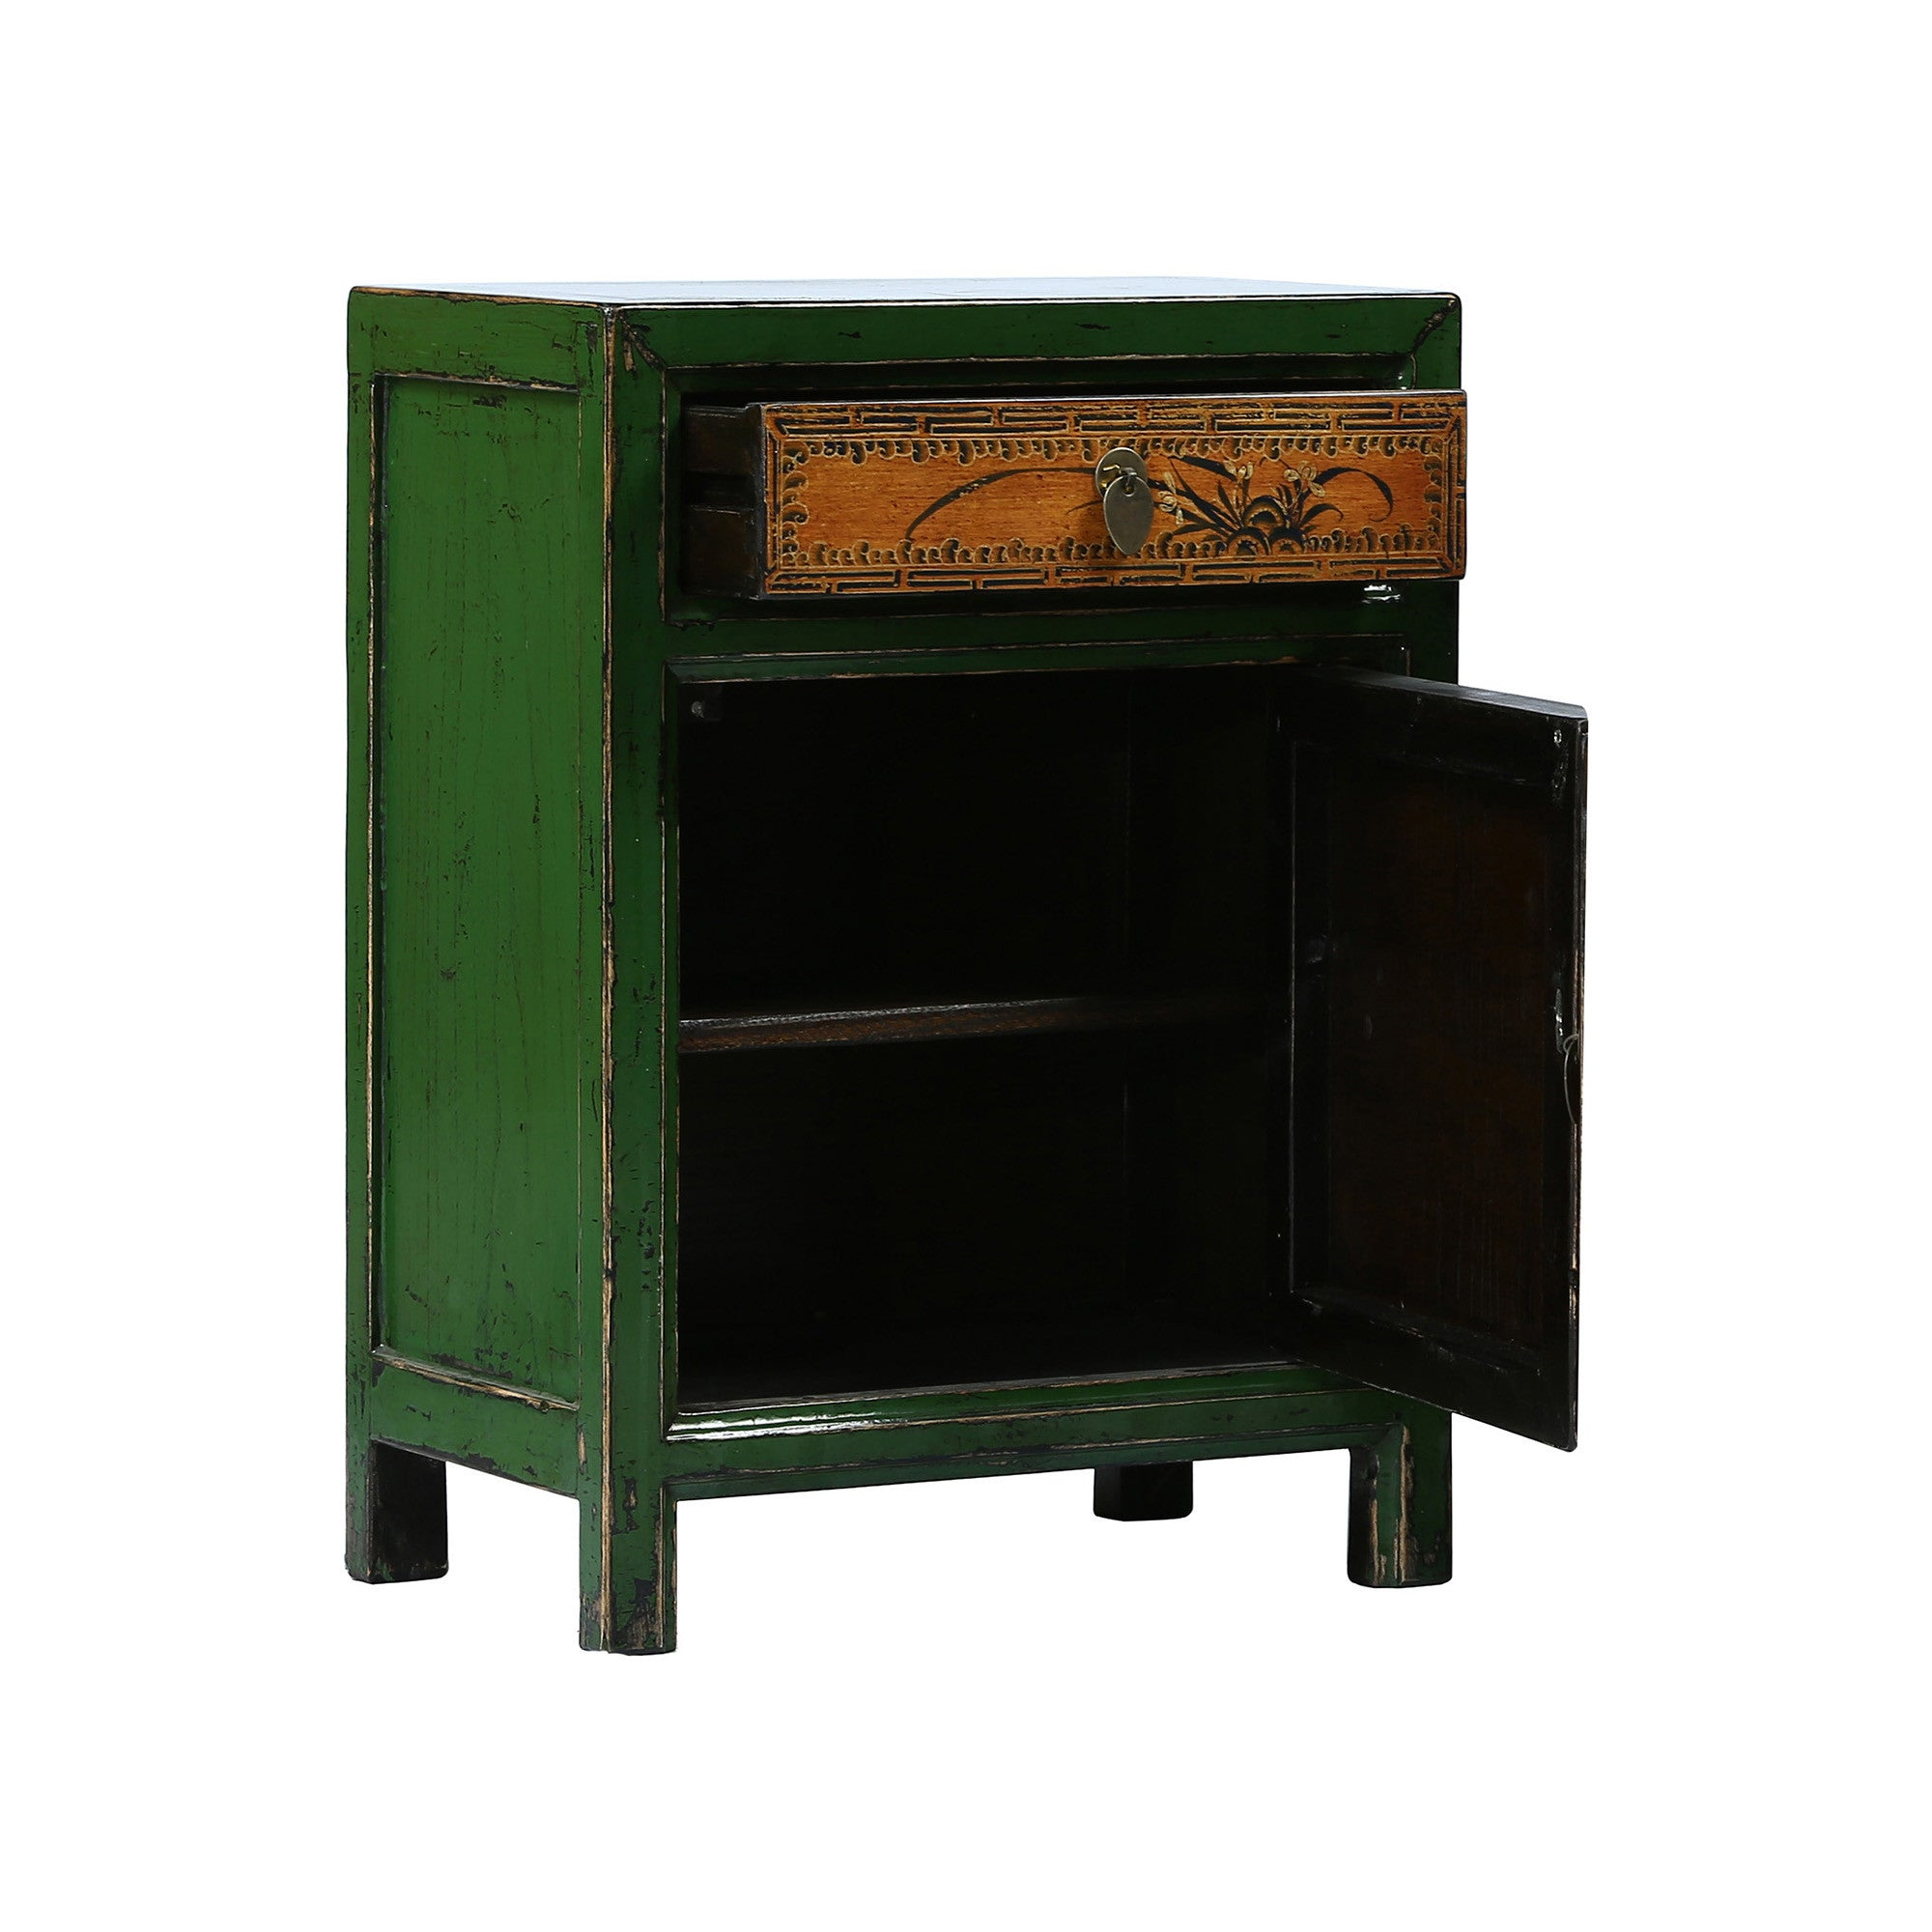 Painted Chinese Bedside Cabinet with drawer and door open